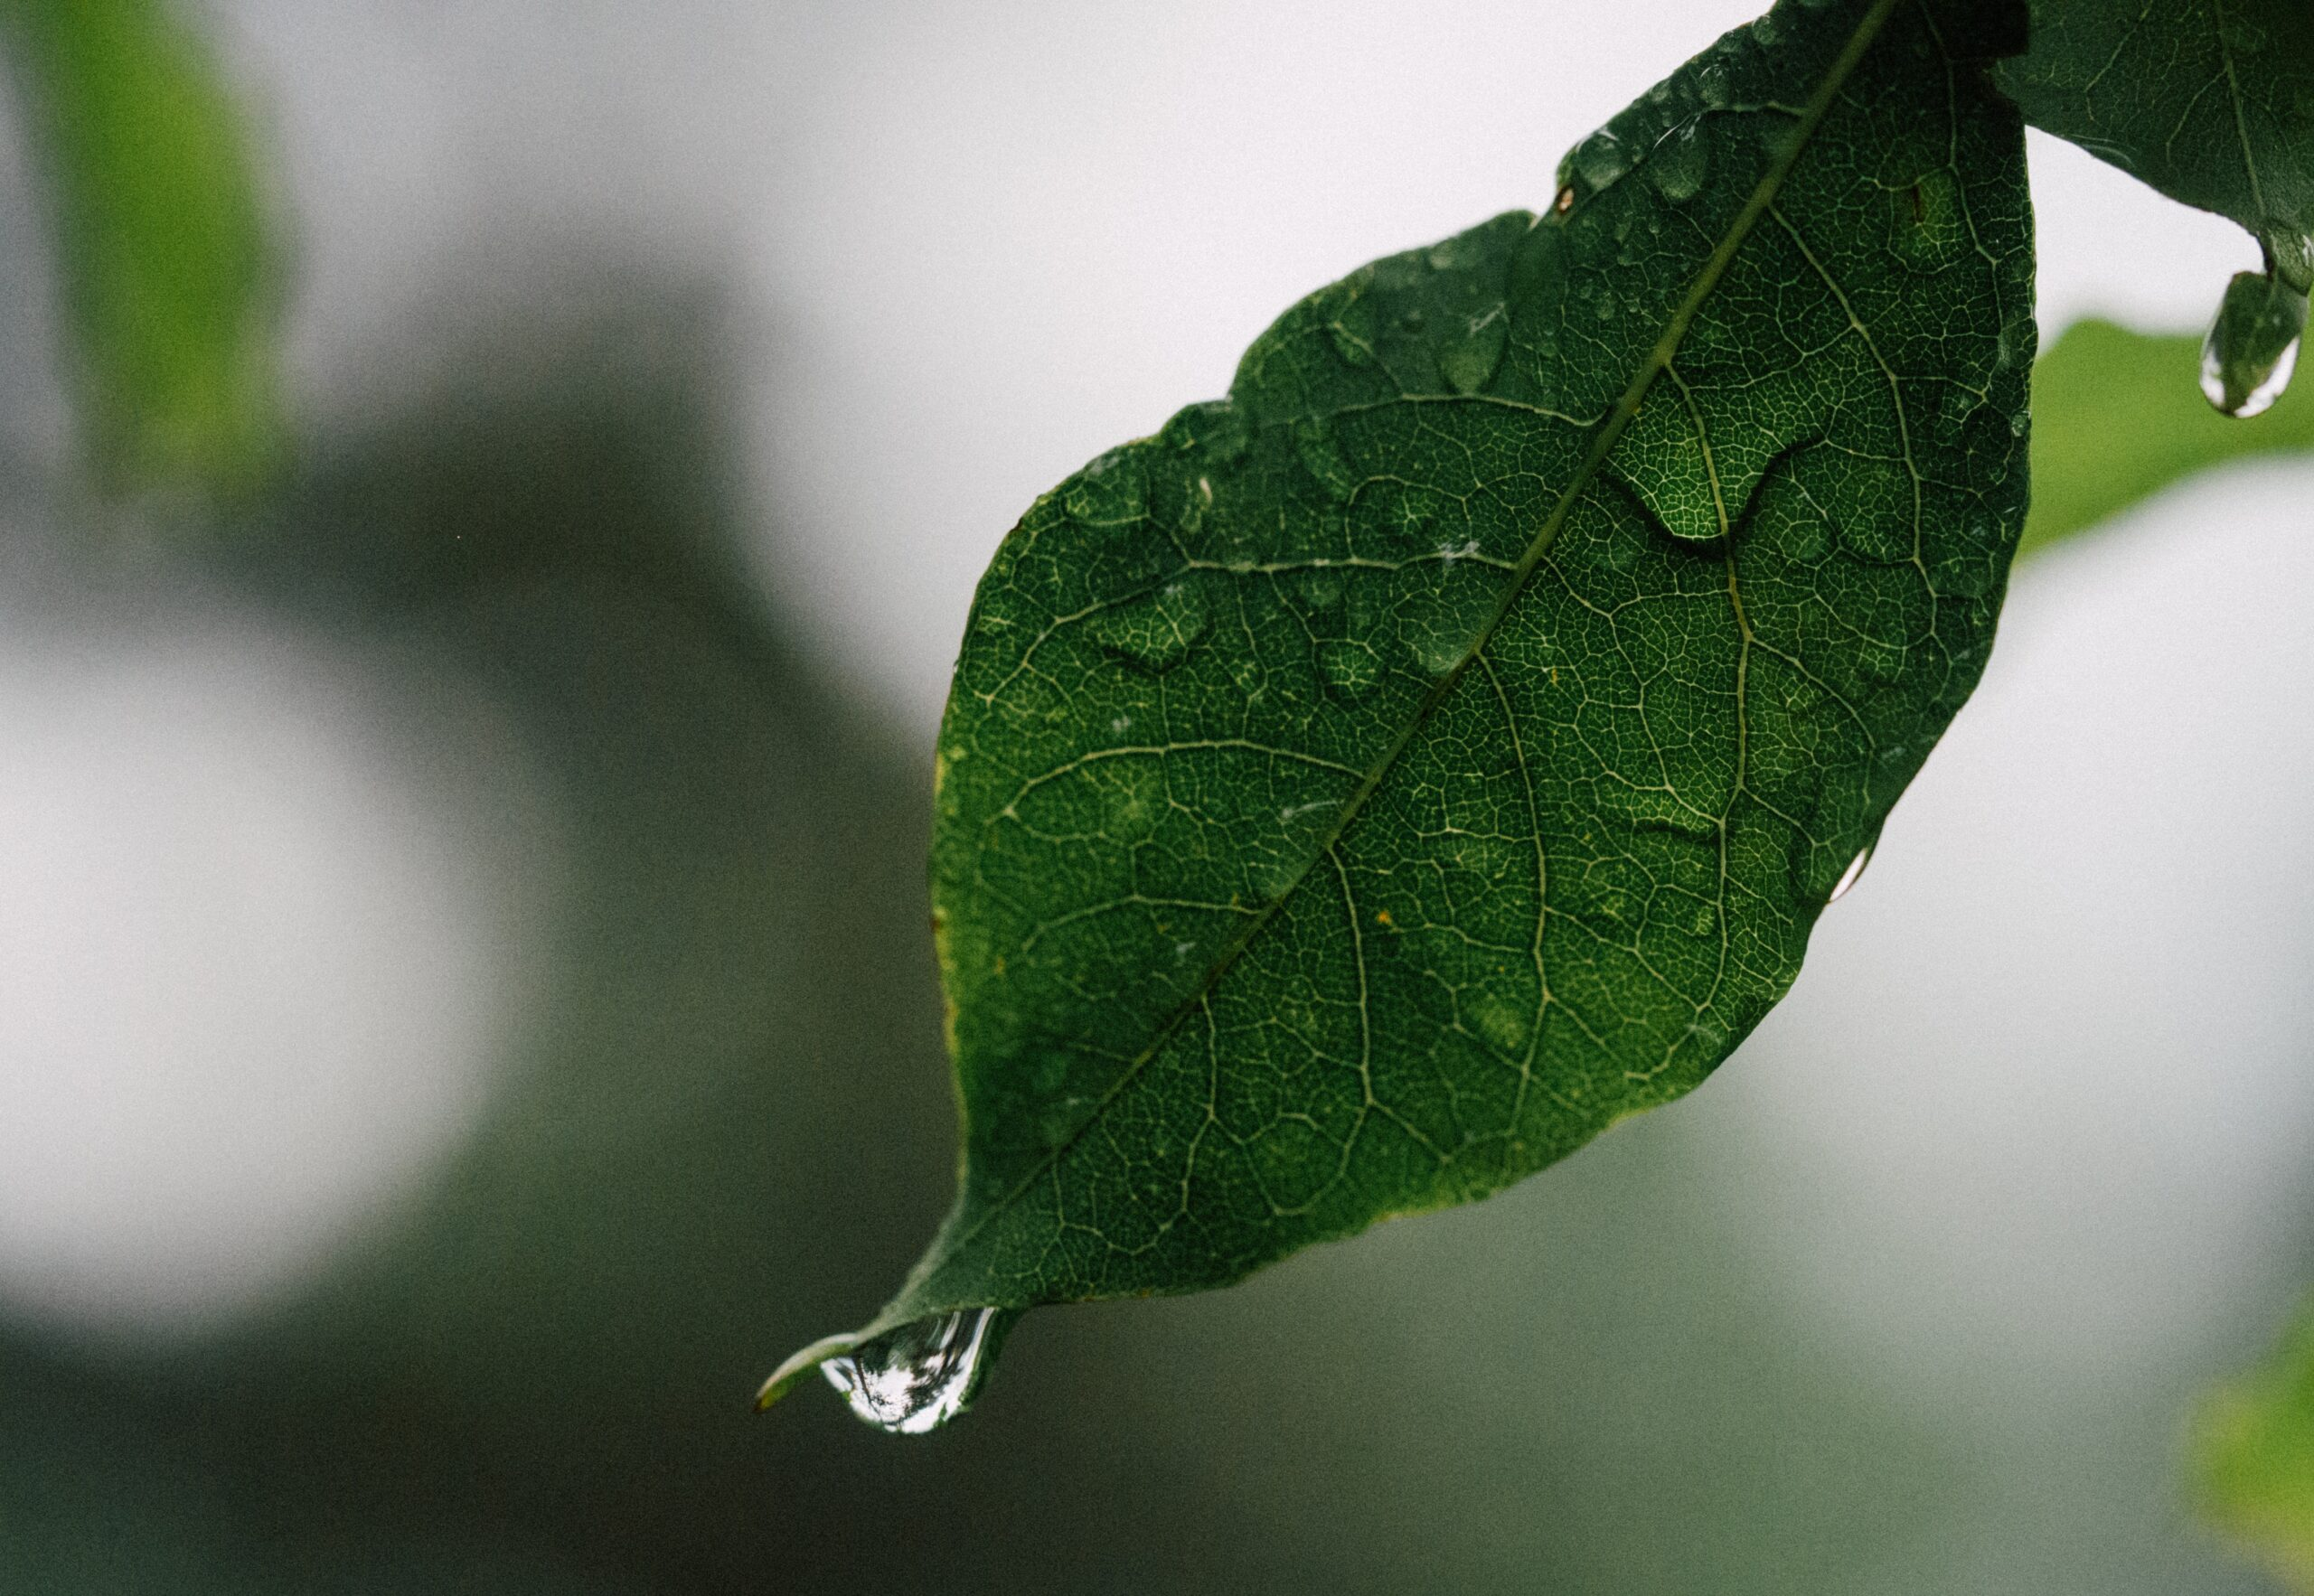 Rain – an invitation to wholeness